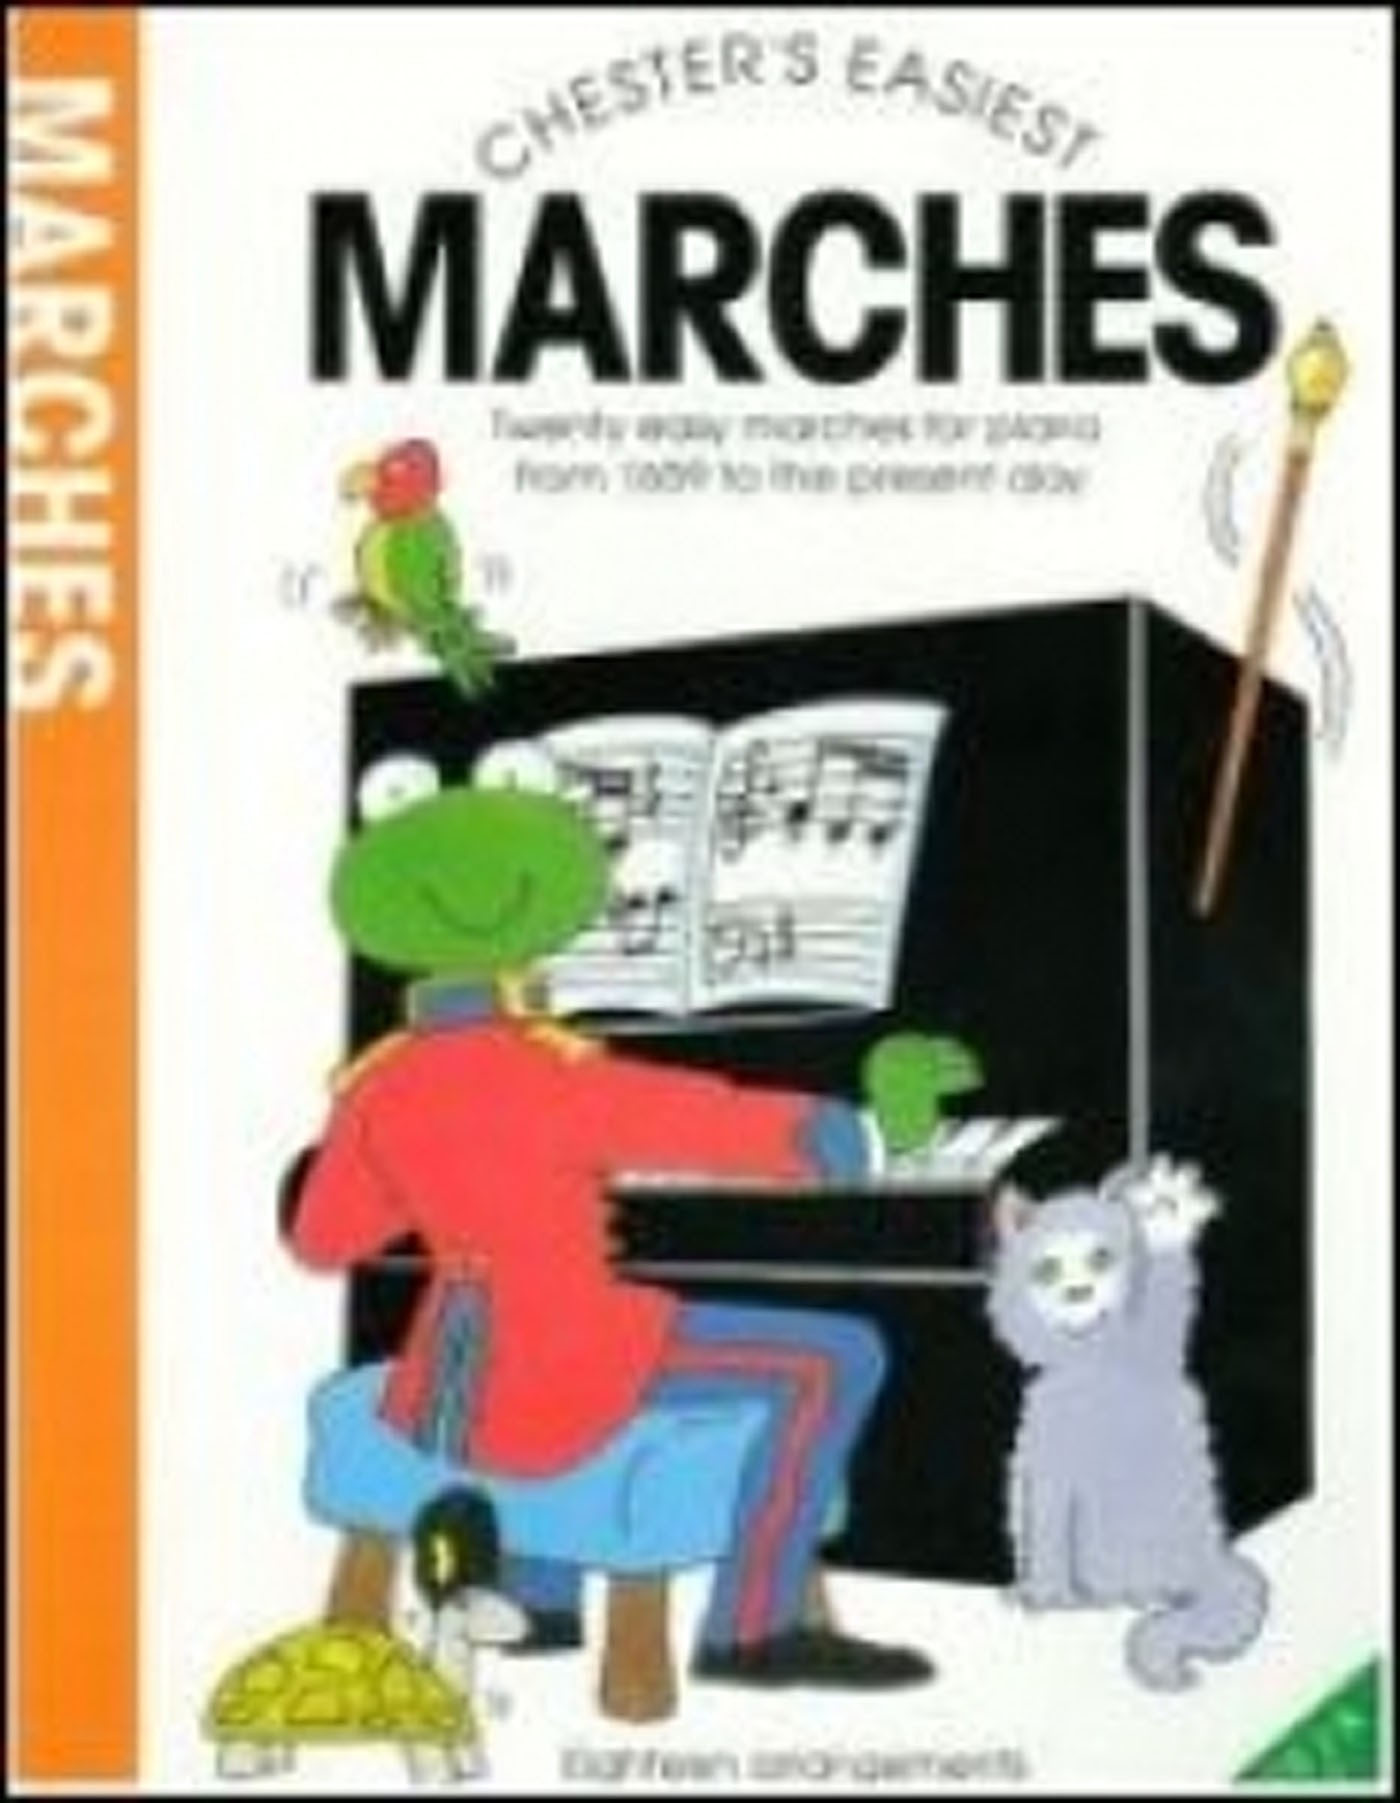 Chester's Easiest Marches Easy Piano Book Carol Barratt S141